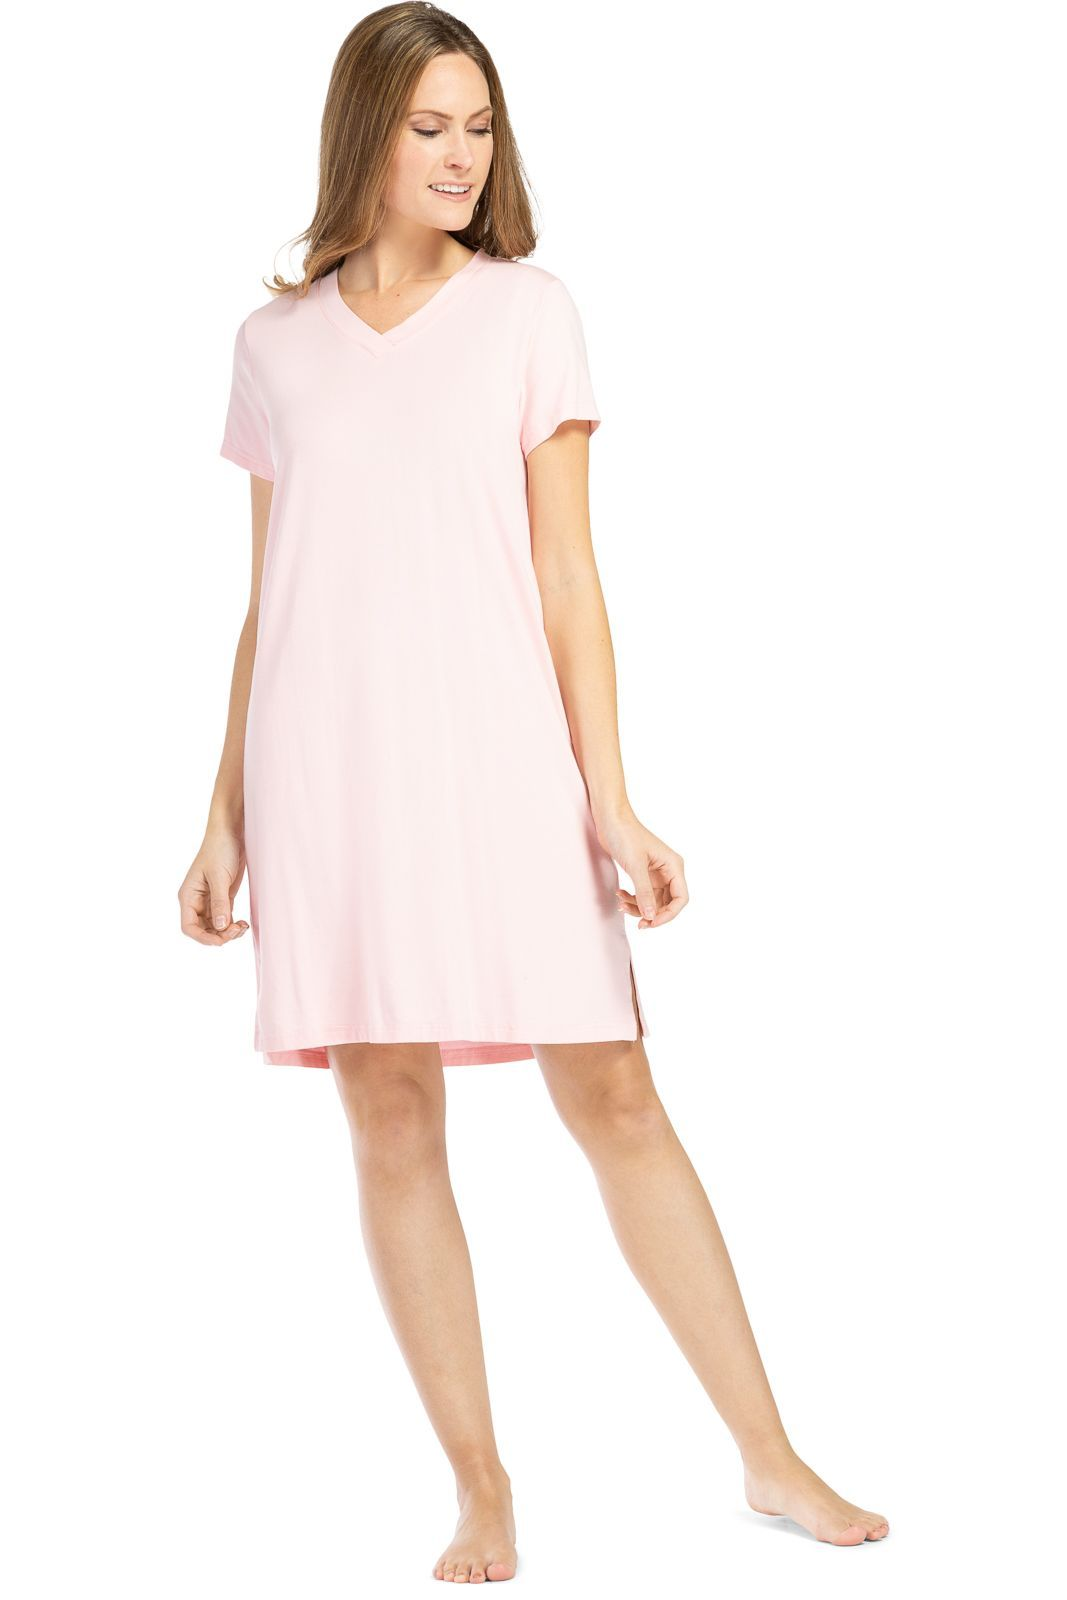 Women's EcoFabric™ Sleep Shirt / Nightgown - Fishers Finery